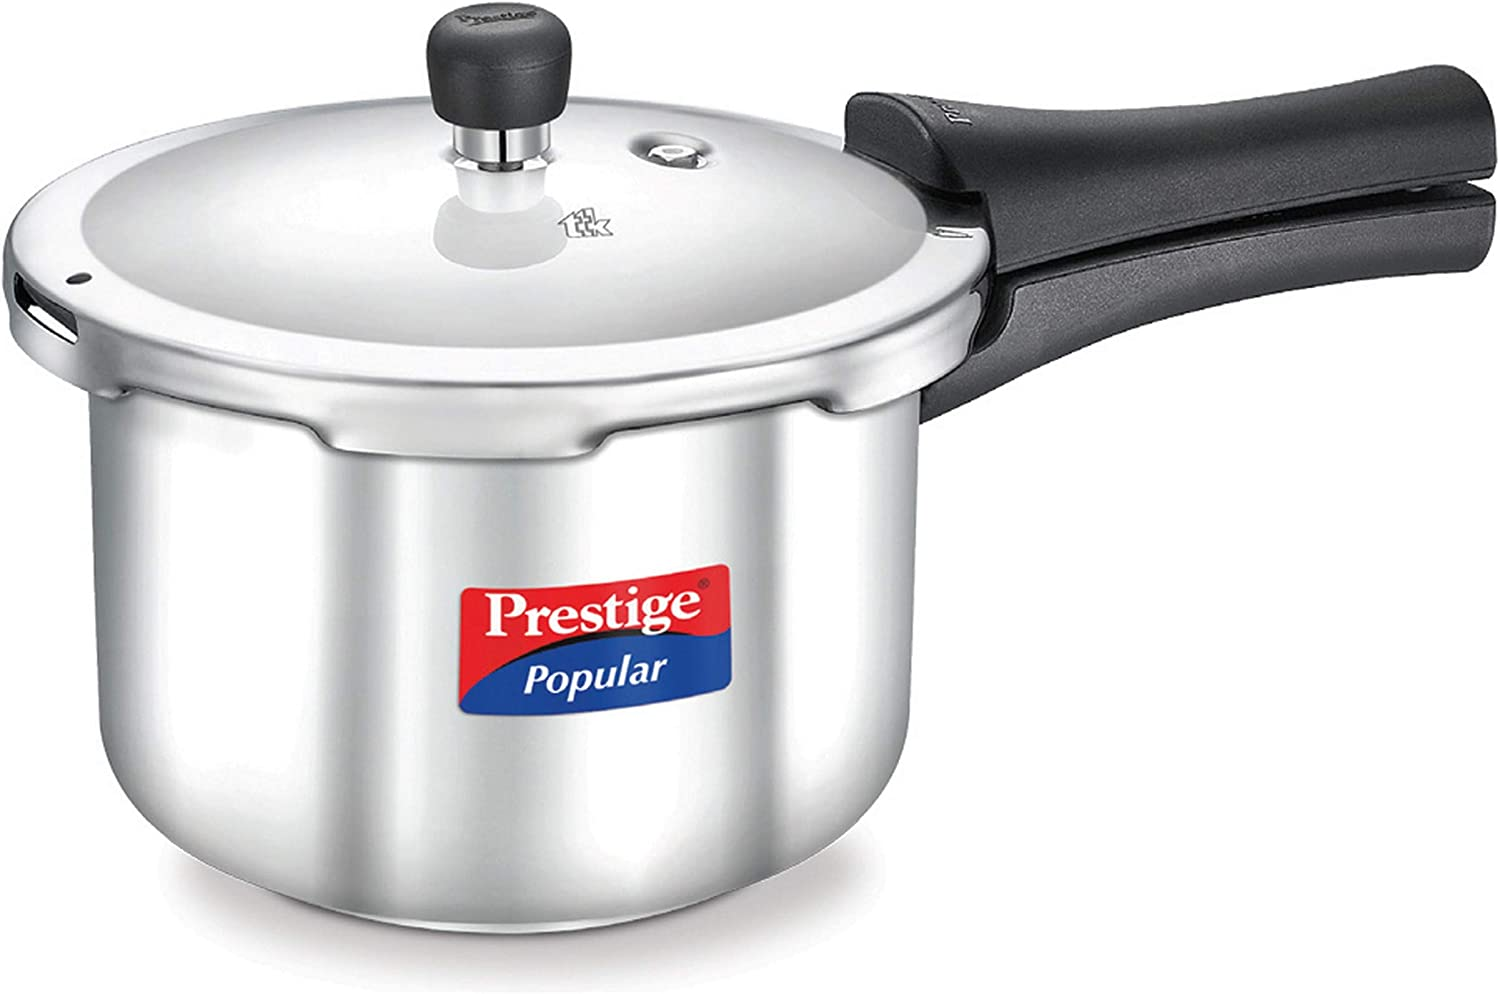 Prestige Popular Stainless Steel Pressure Cooker, 3 litres